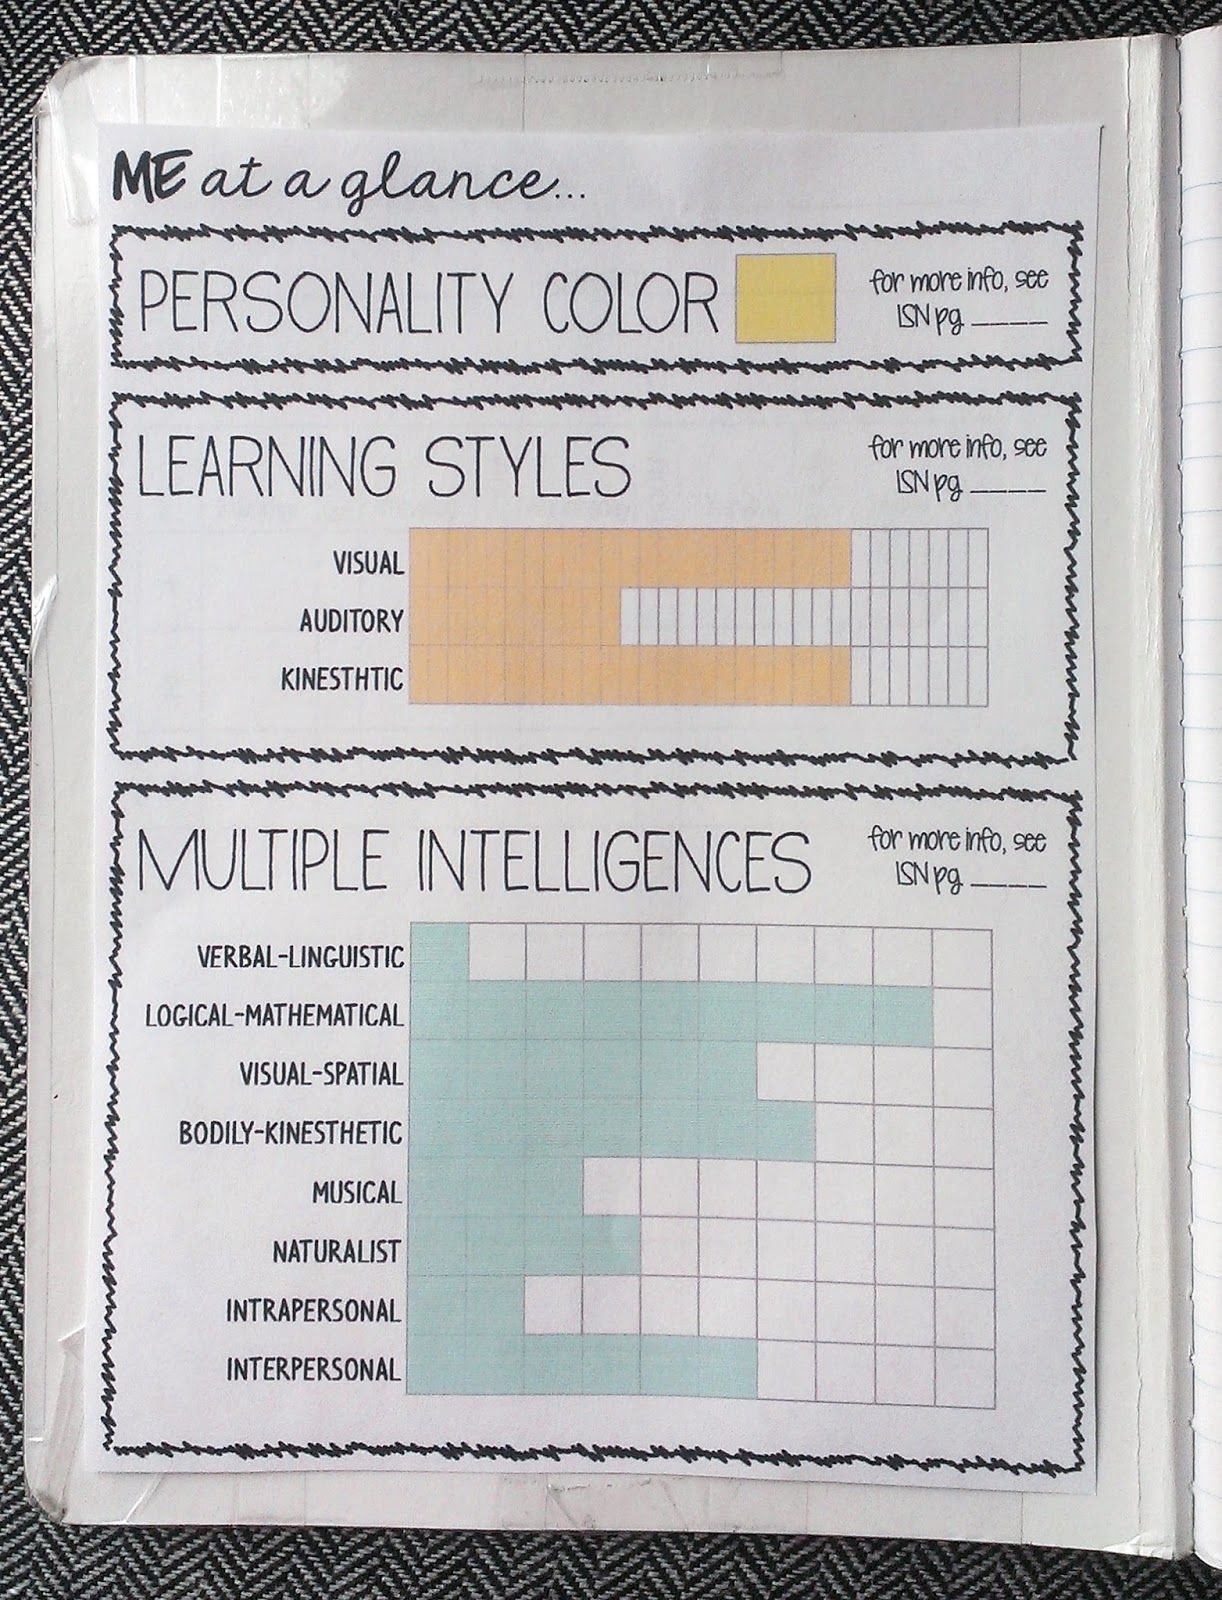 Everybody Is A Genius Me At A Glance Giving A Personality Survey Learning Style And Multiple